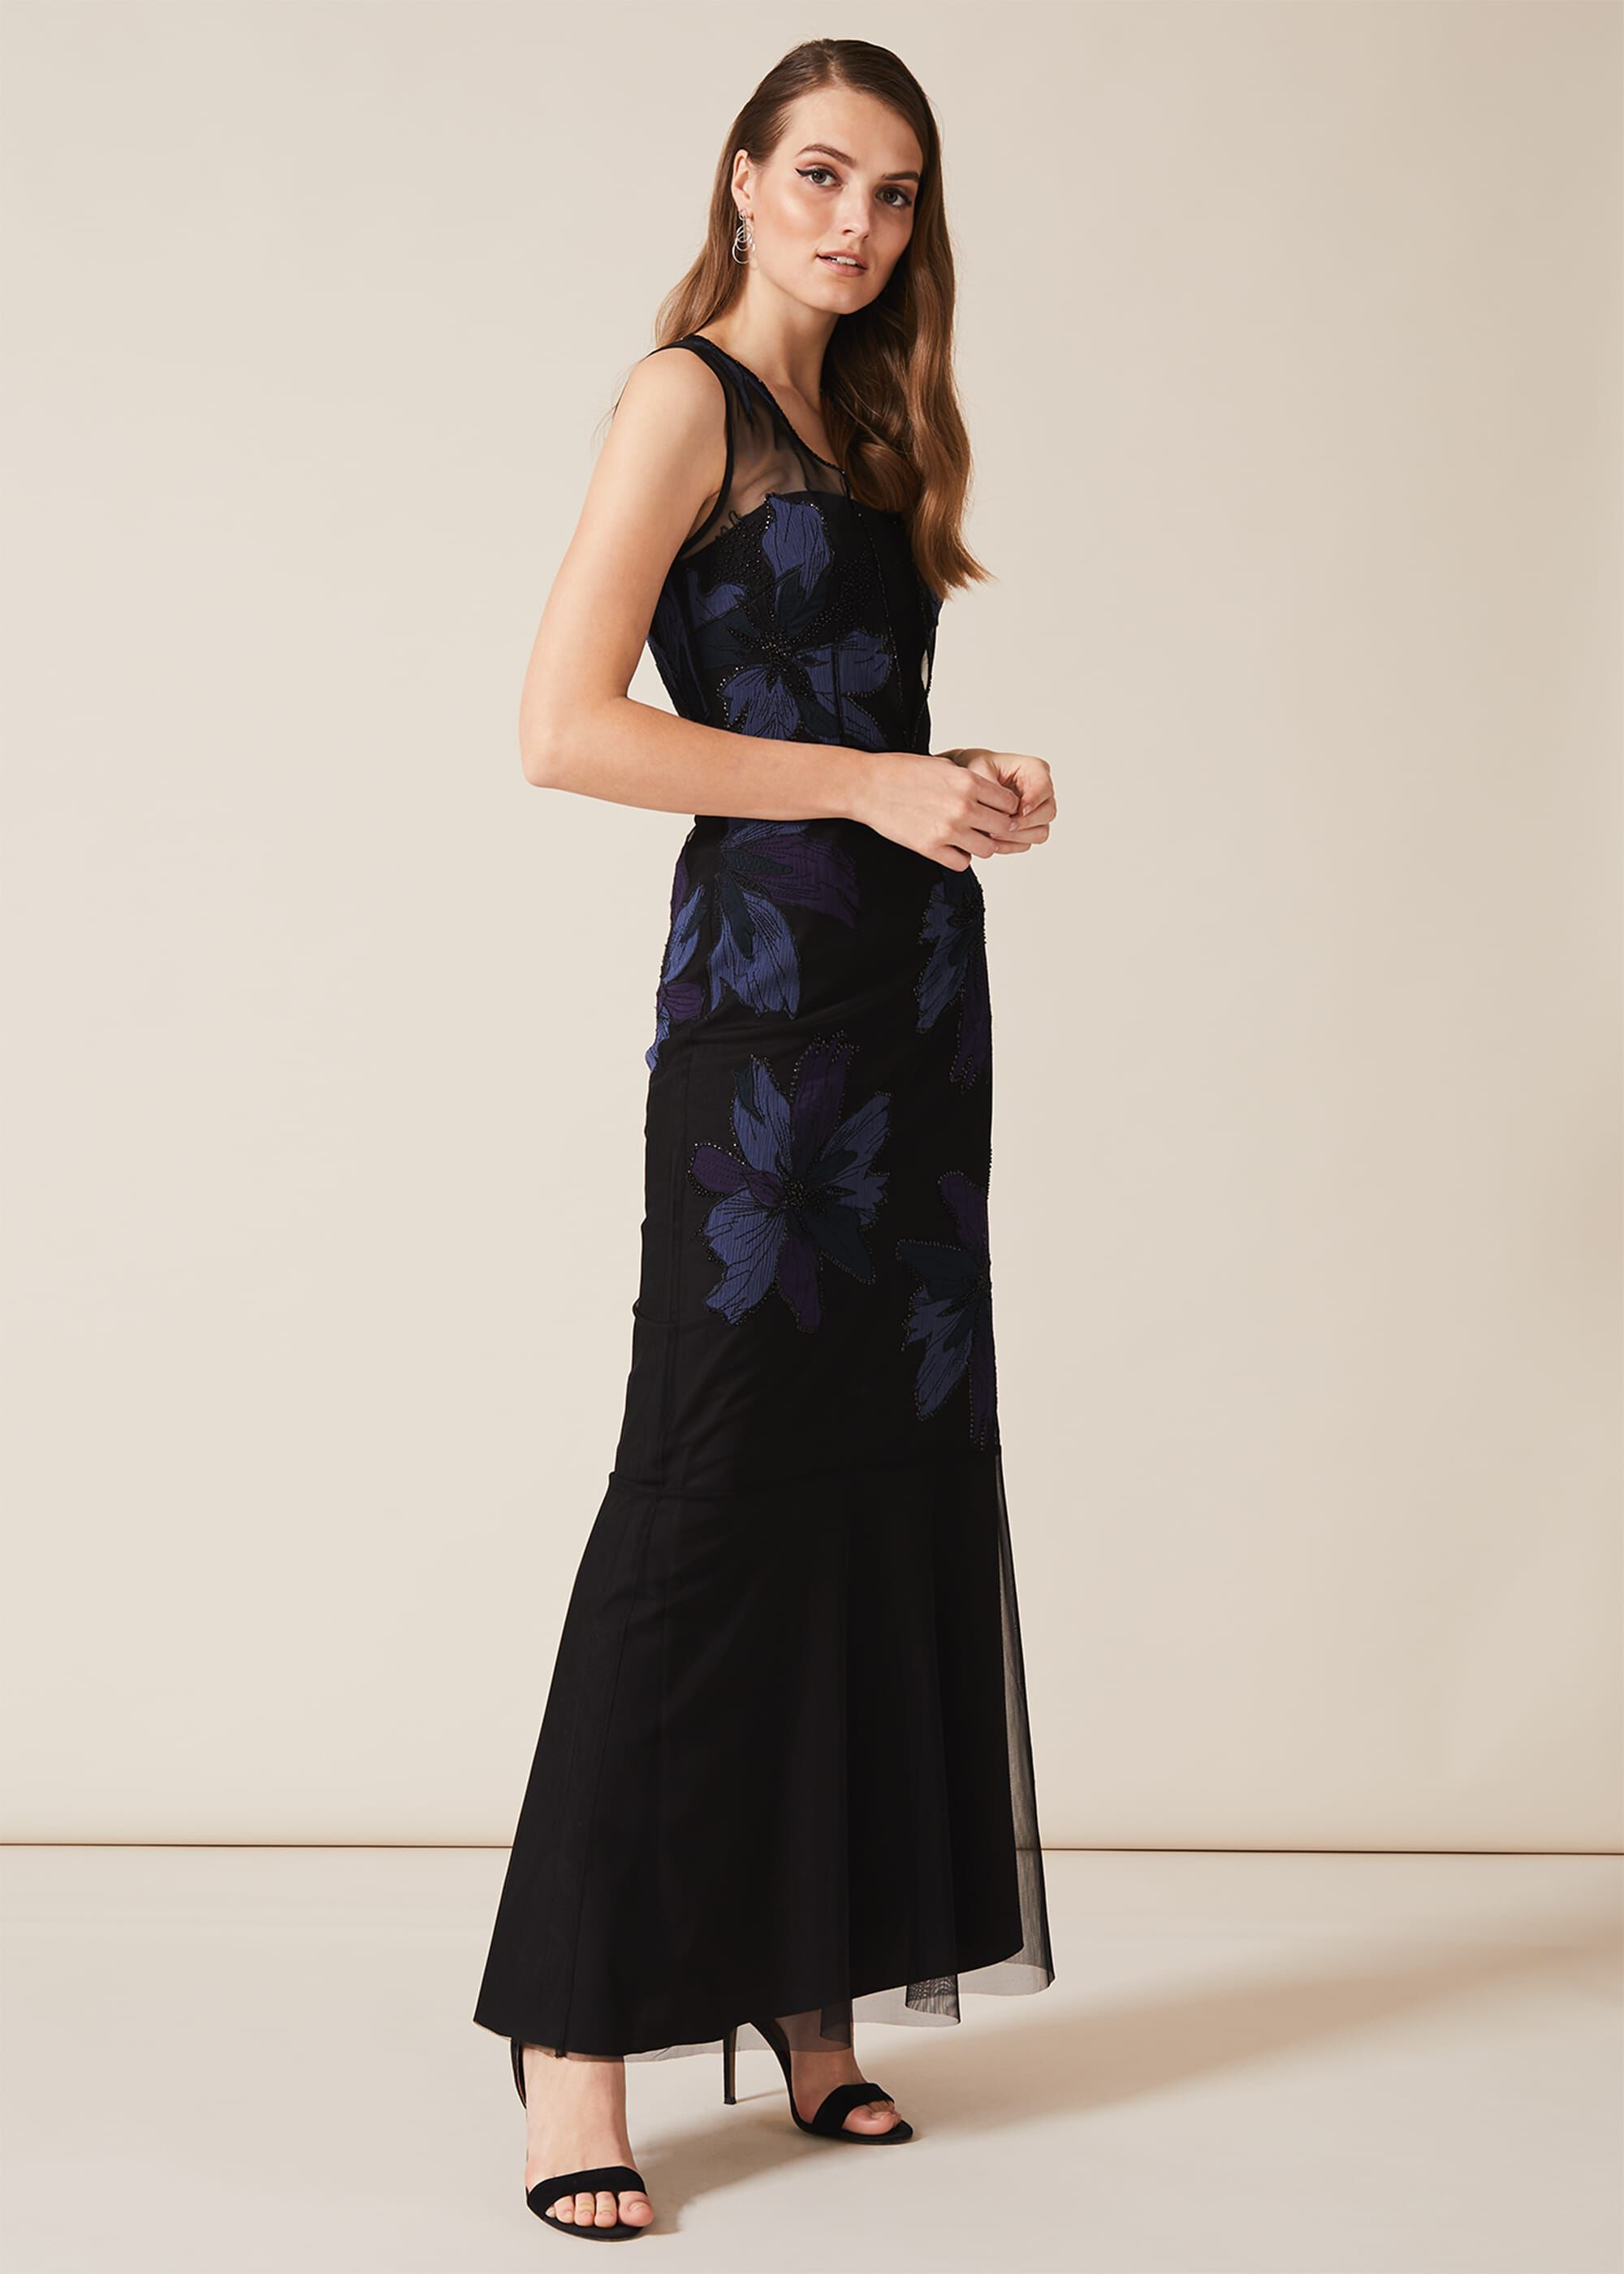 Phase Eight Barbara Applique Floral Dress, Black, Maxi